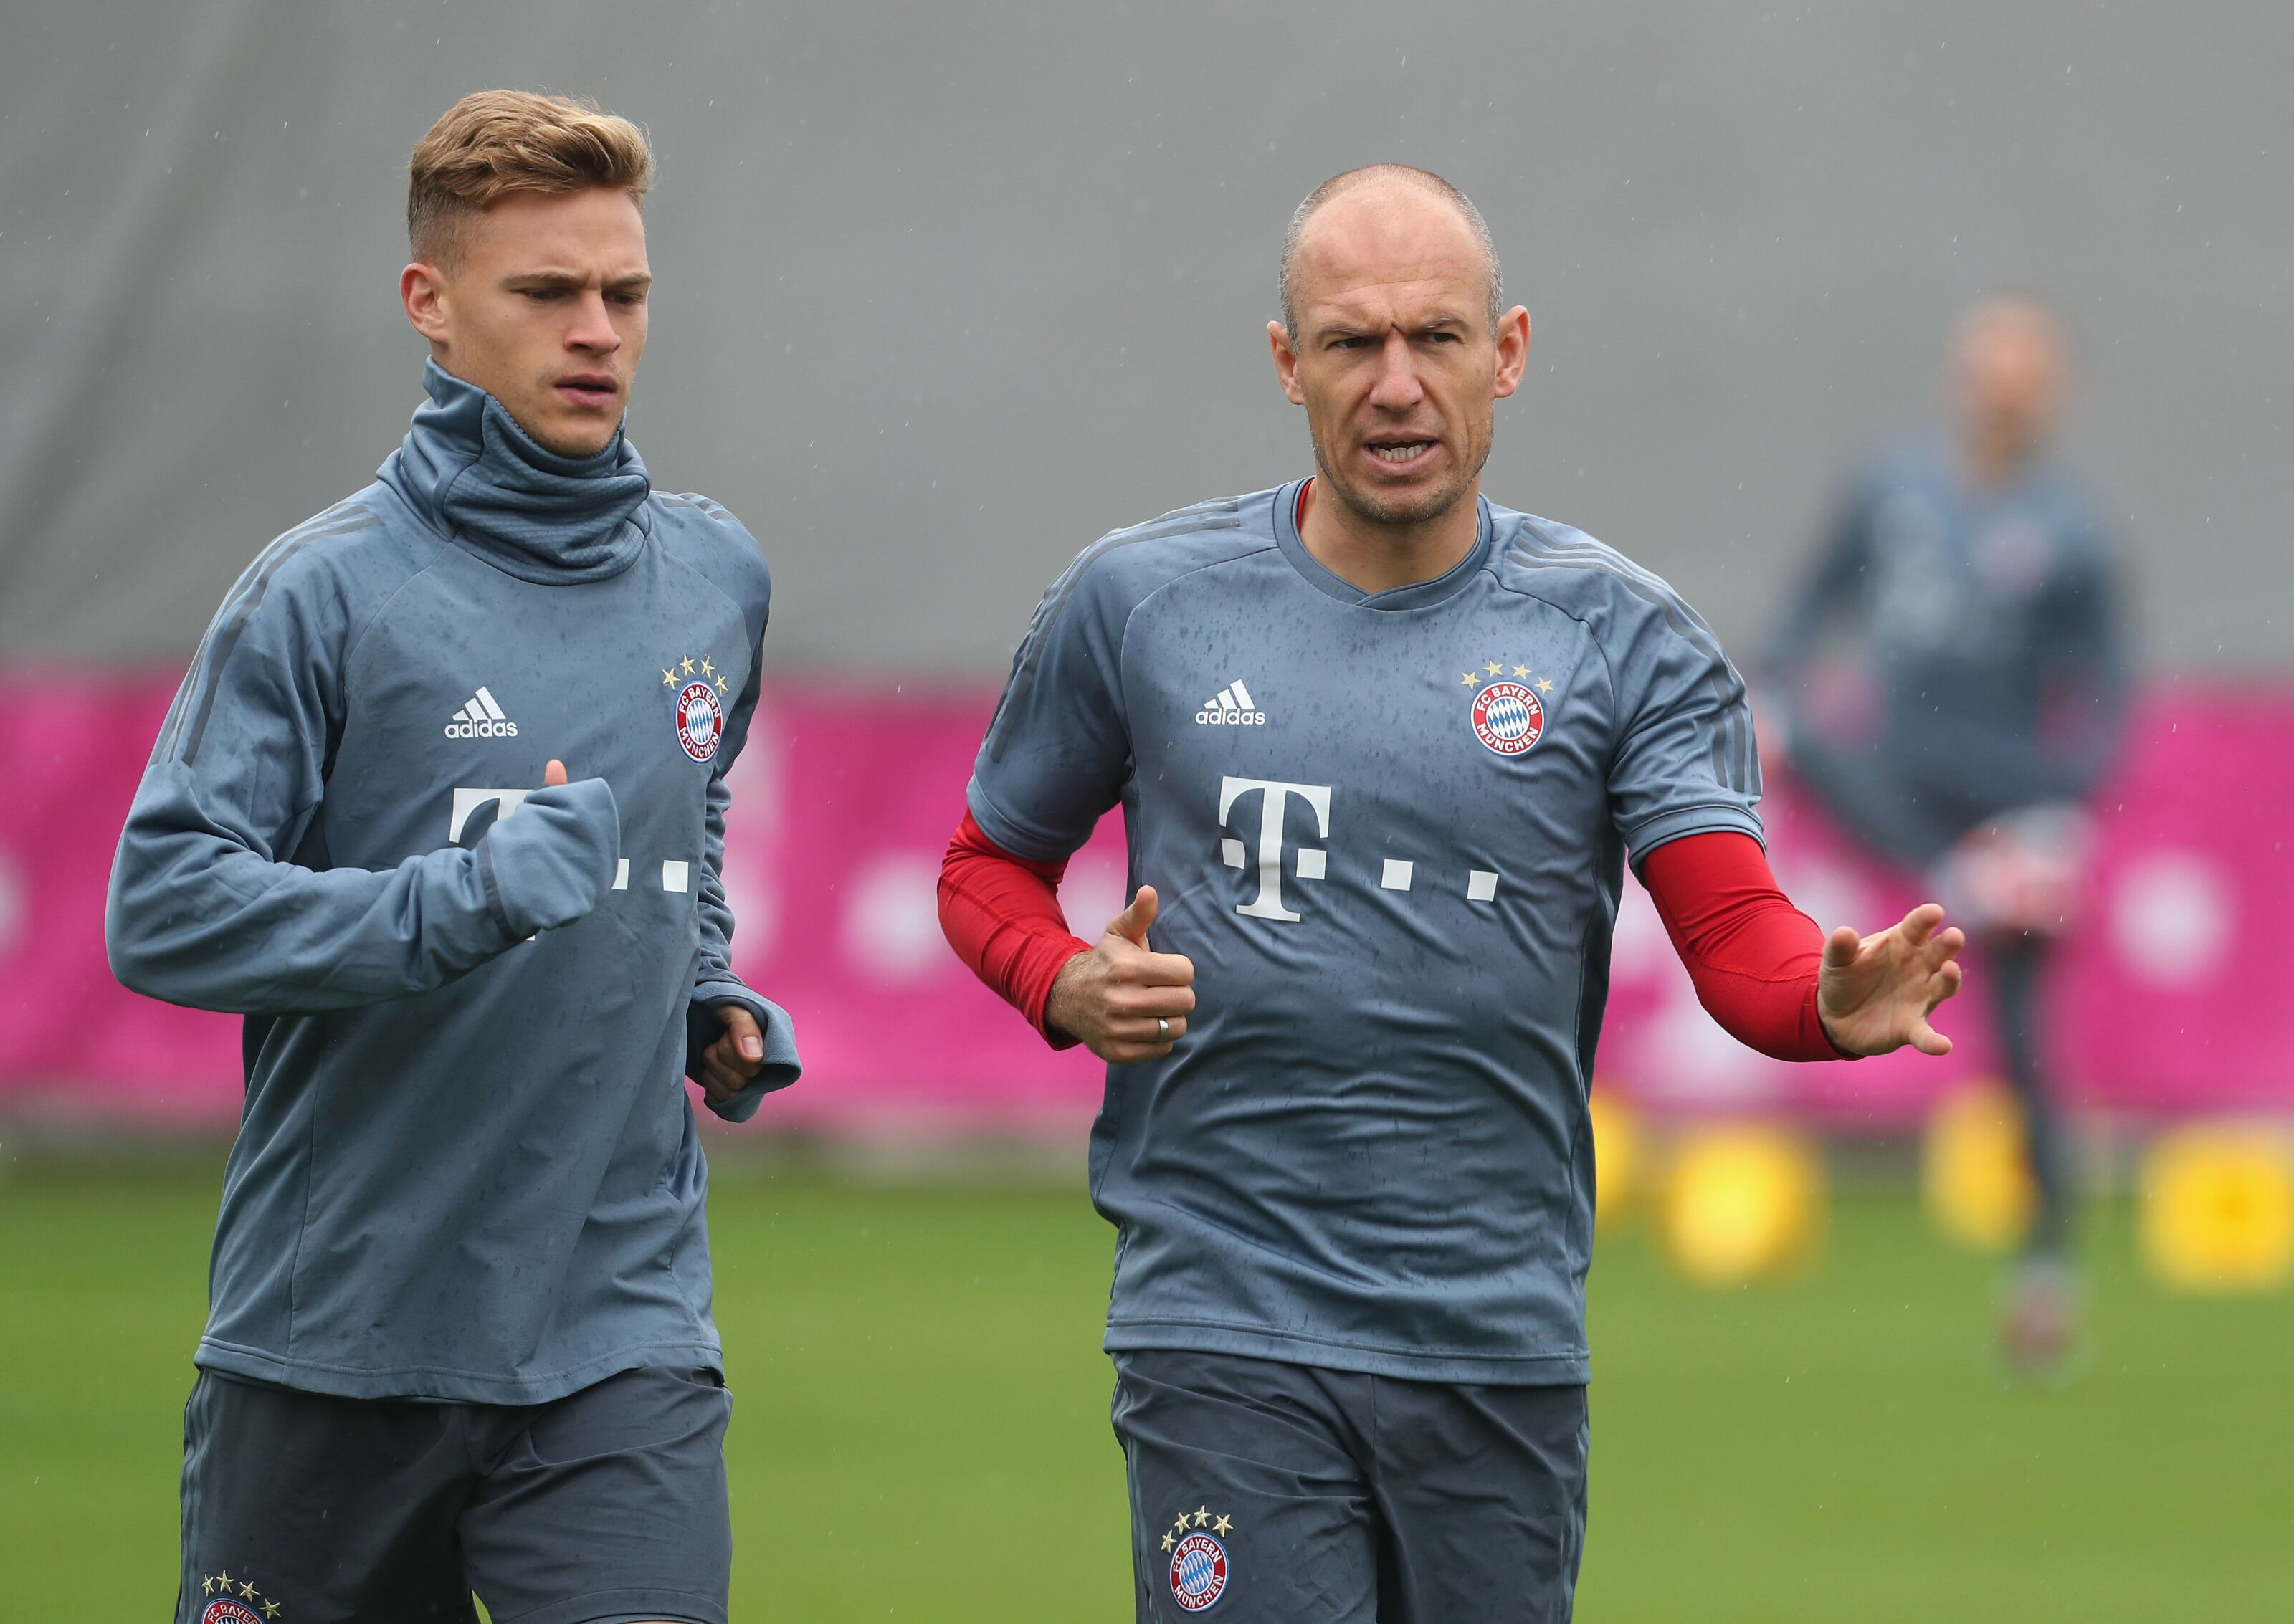 f76600bd9 Bayern Munich face Ajax for first place in Champions League group E